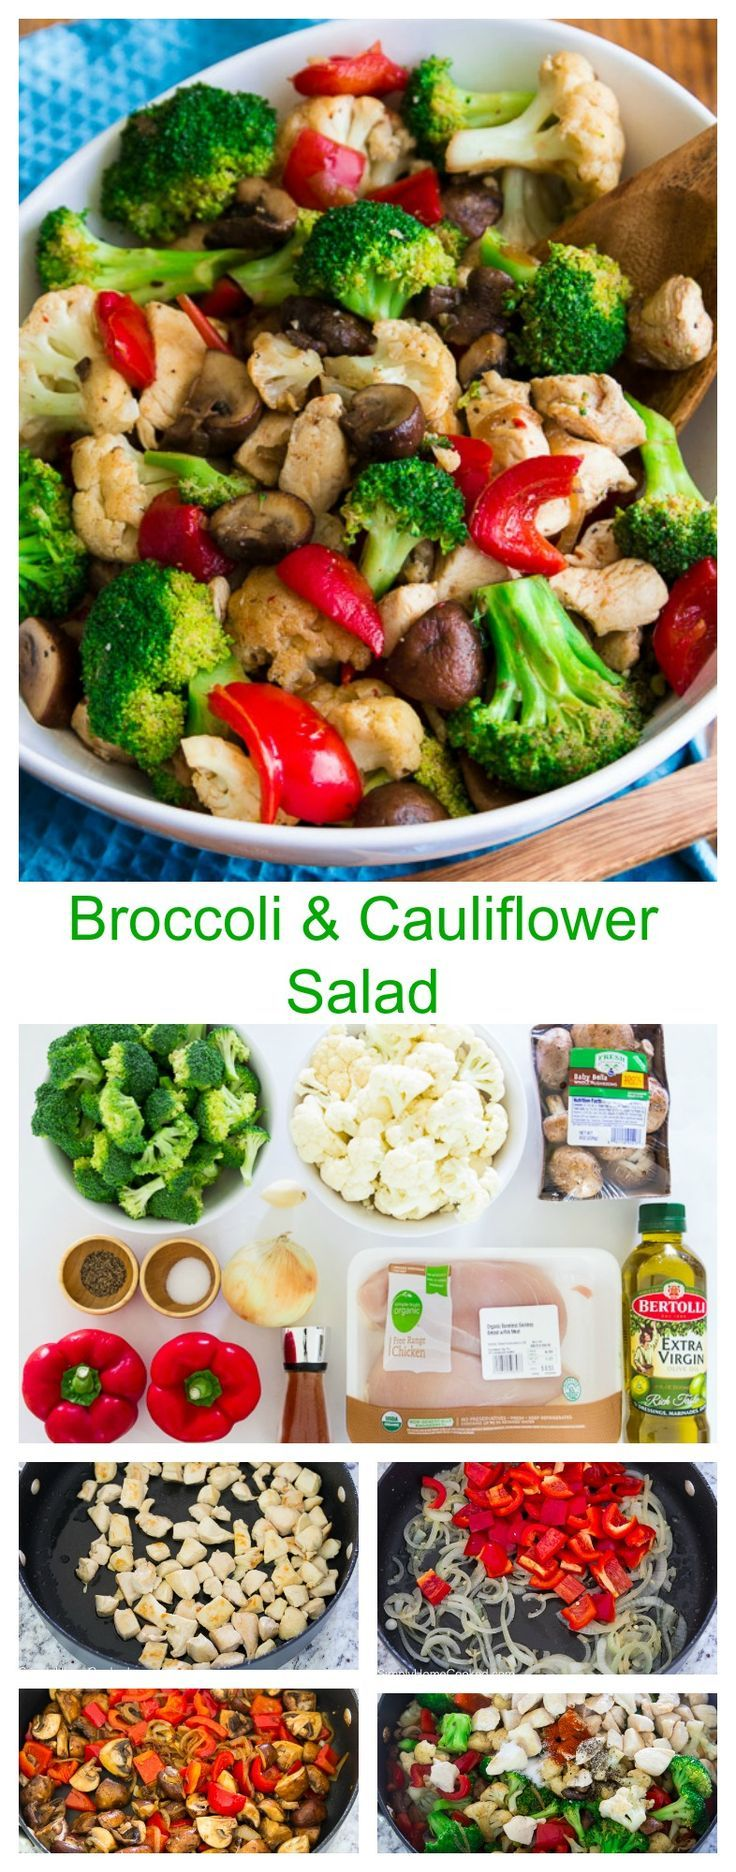 This broccoli and cauliflower salad has it all. Protein, fiber, antioxidants, and many more nutrients are found in this salad.